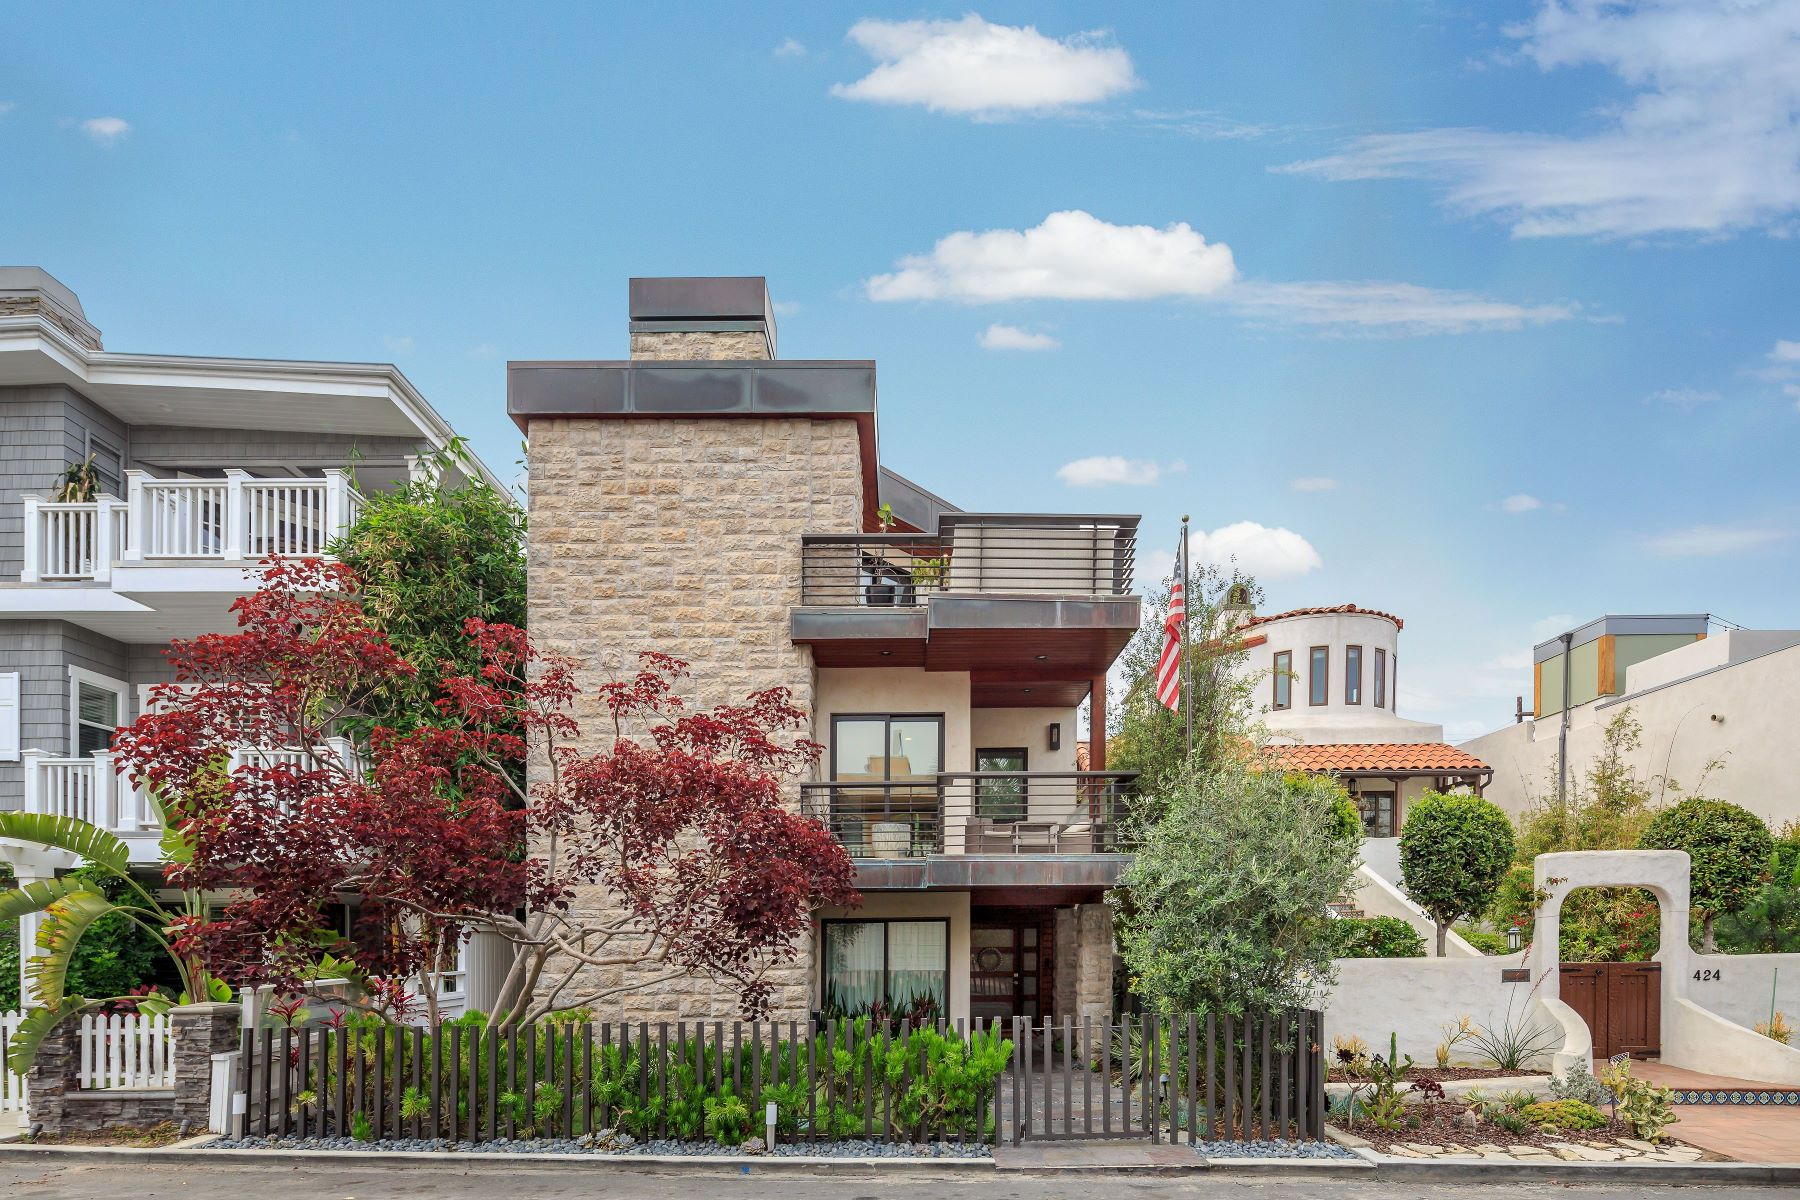 Single Family Homes for Sale at 428 32nd Street, Manhattan Beach, CA 90266 428 32nd Street Manhattan Beach, California 90266 United States